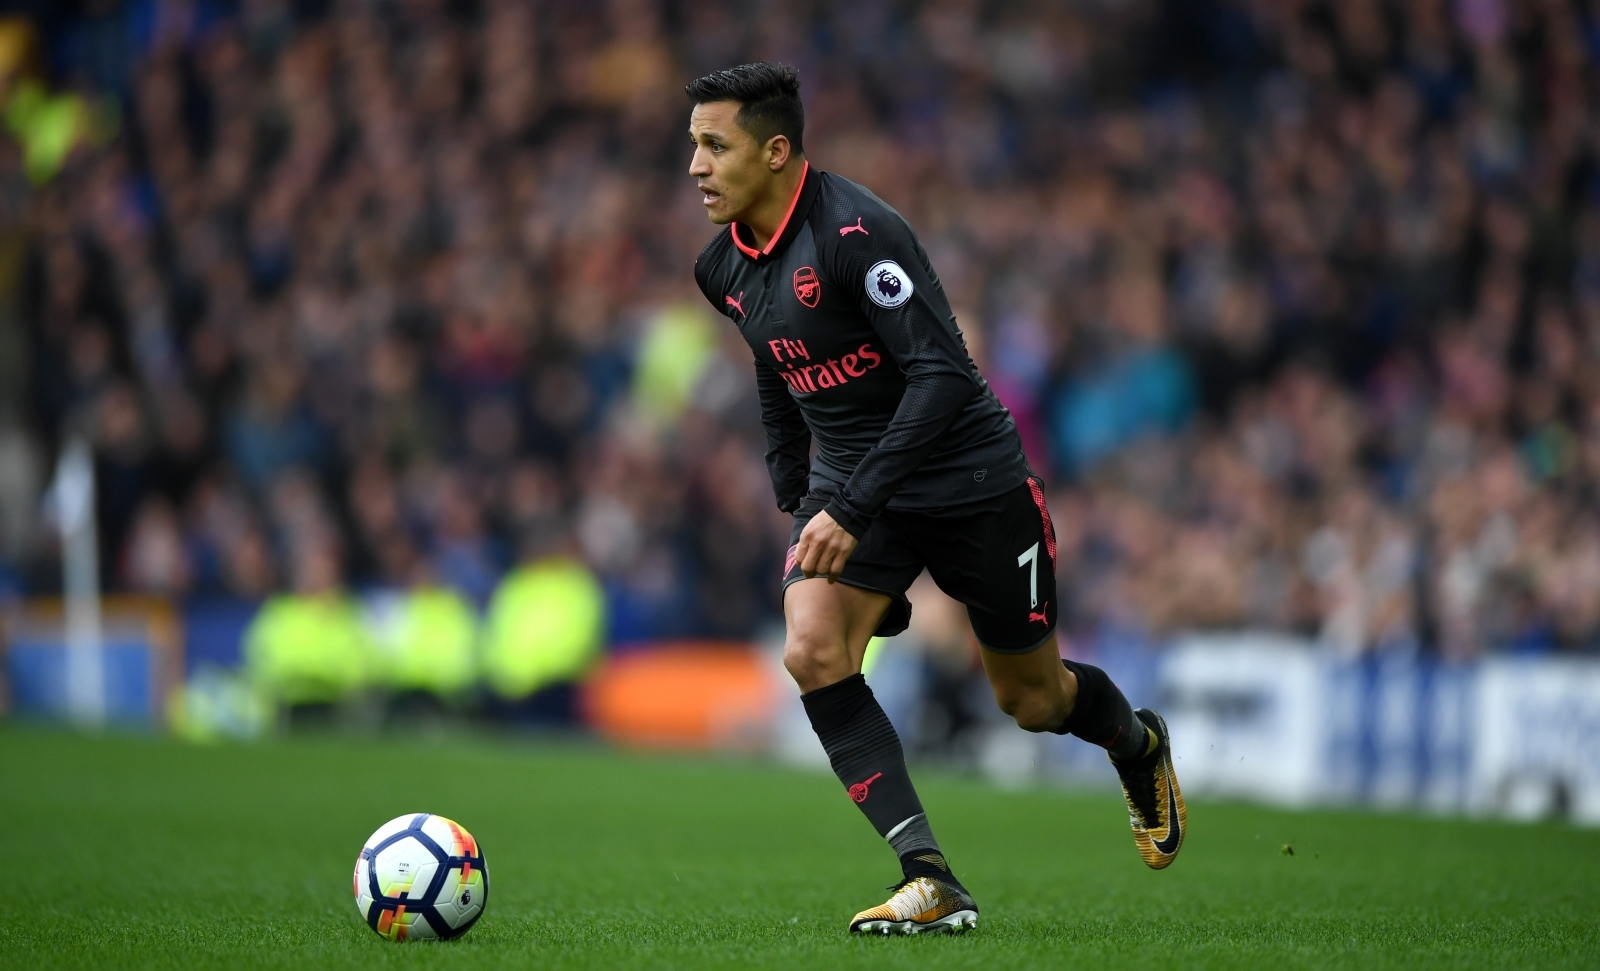 Manchester City will have to pay £30m to sign Alexis Sanchez in